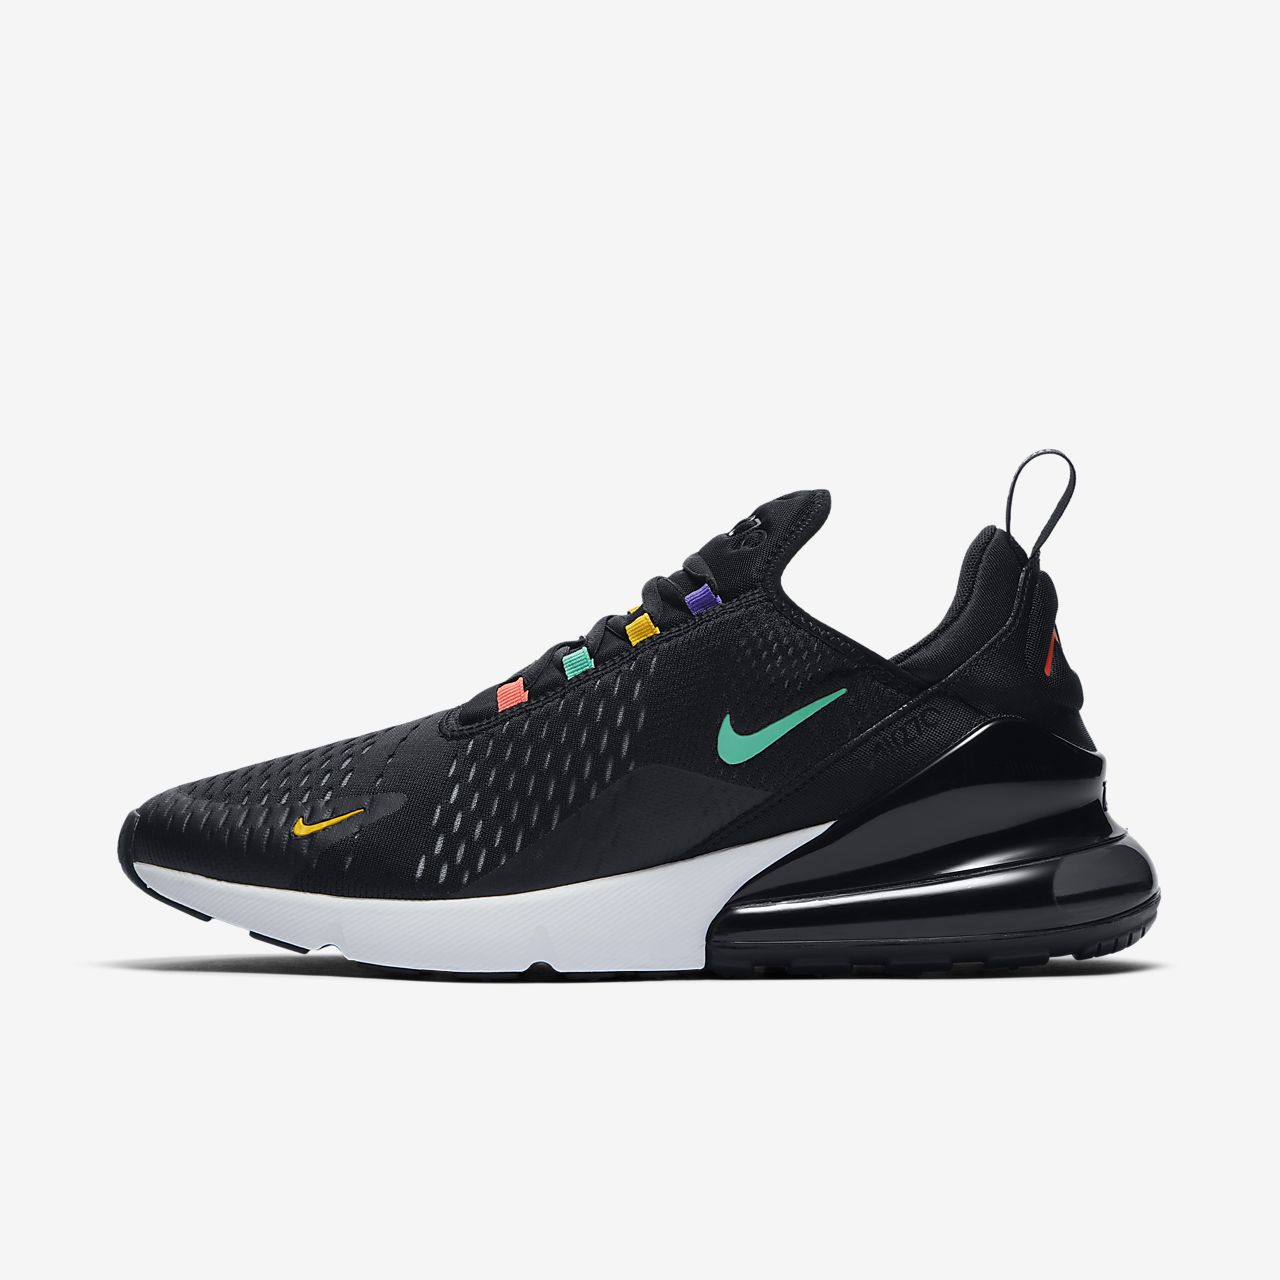 lowest price f5732 a2898 ... Nike Air Max 270 Men s Shoe